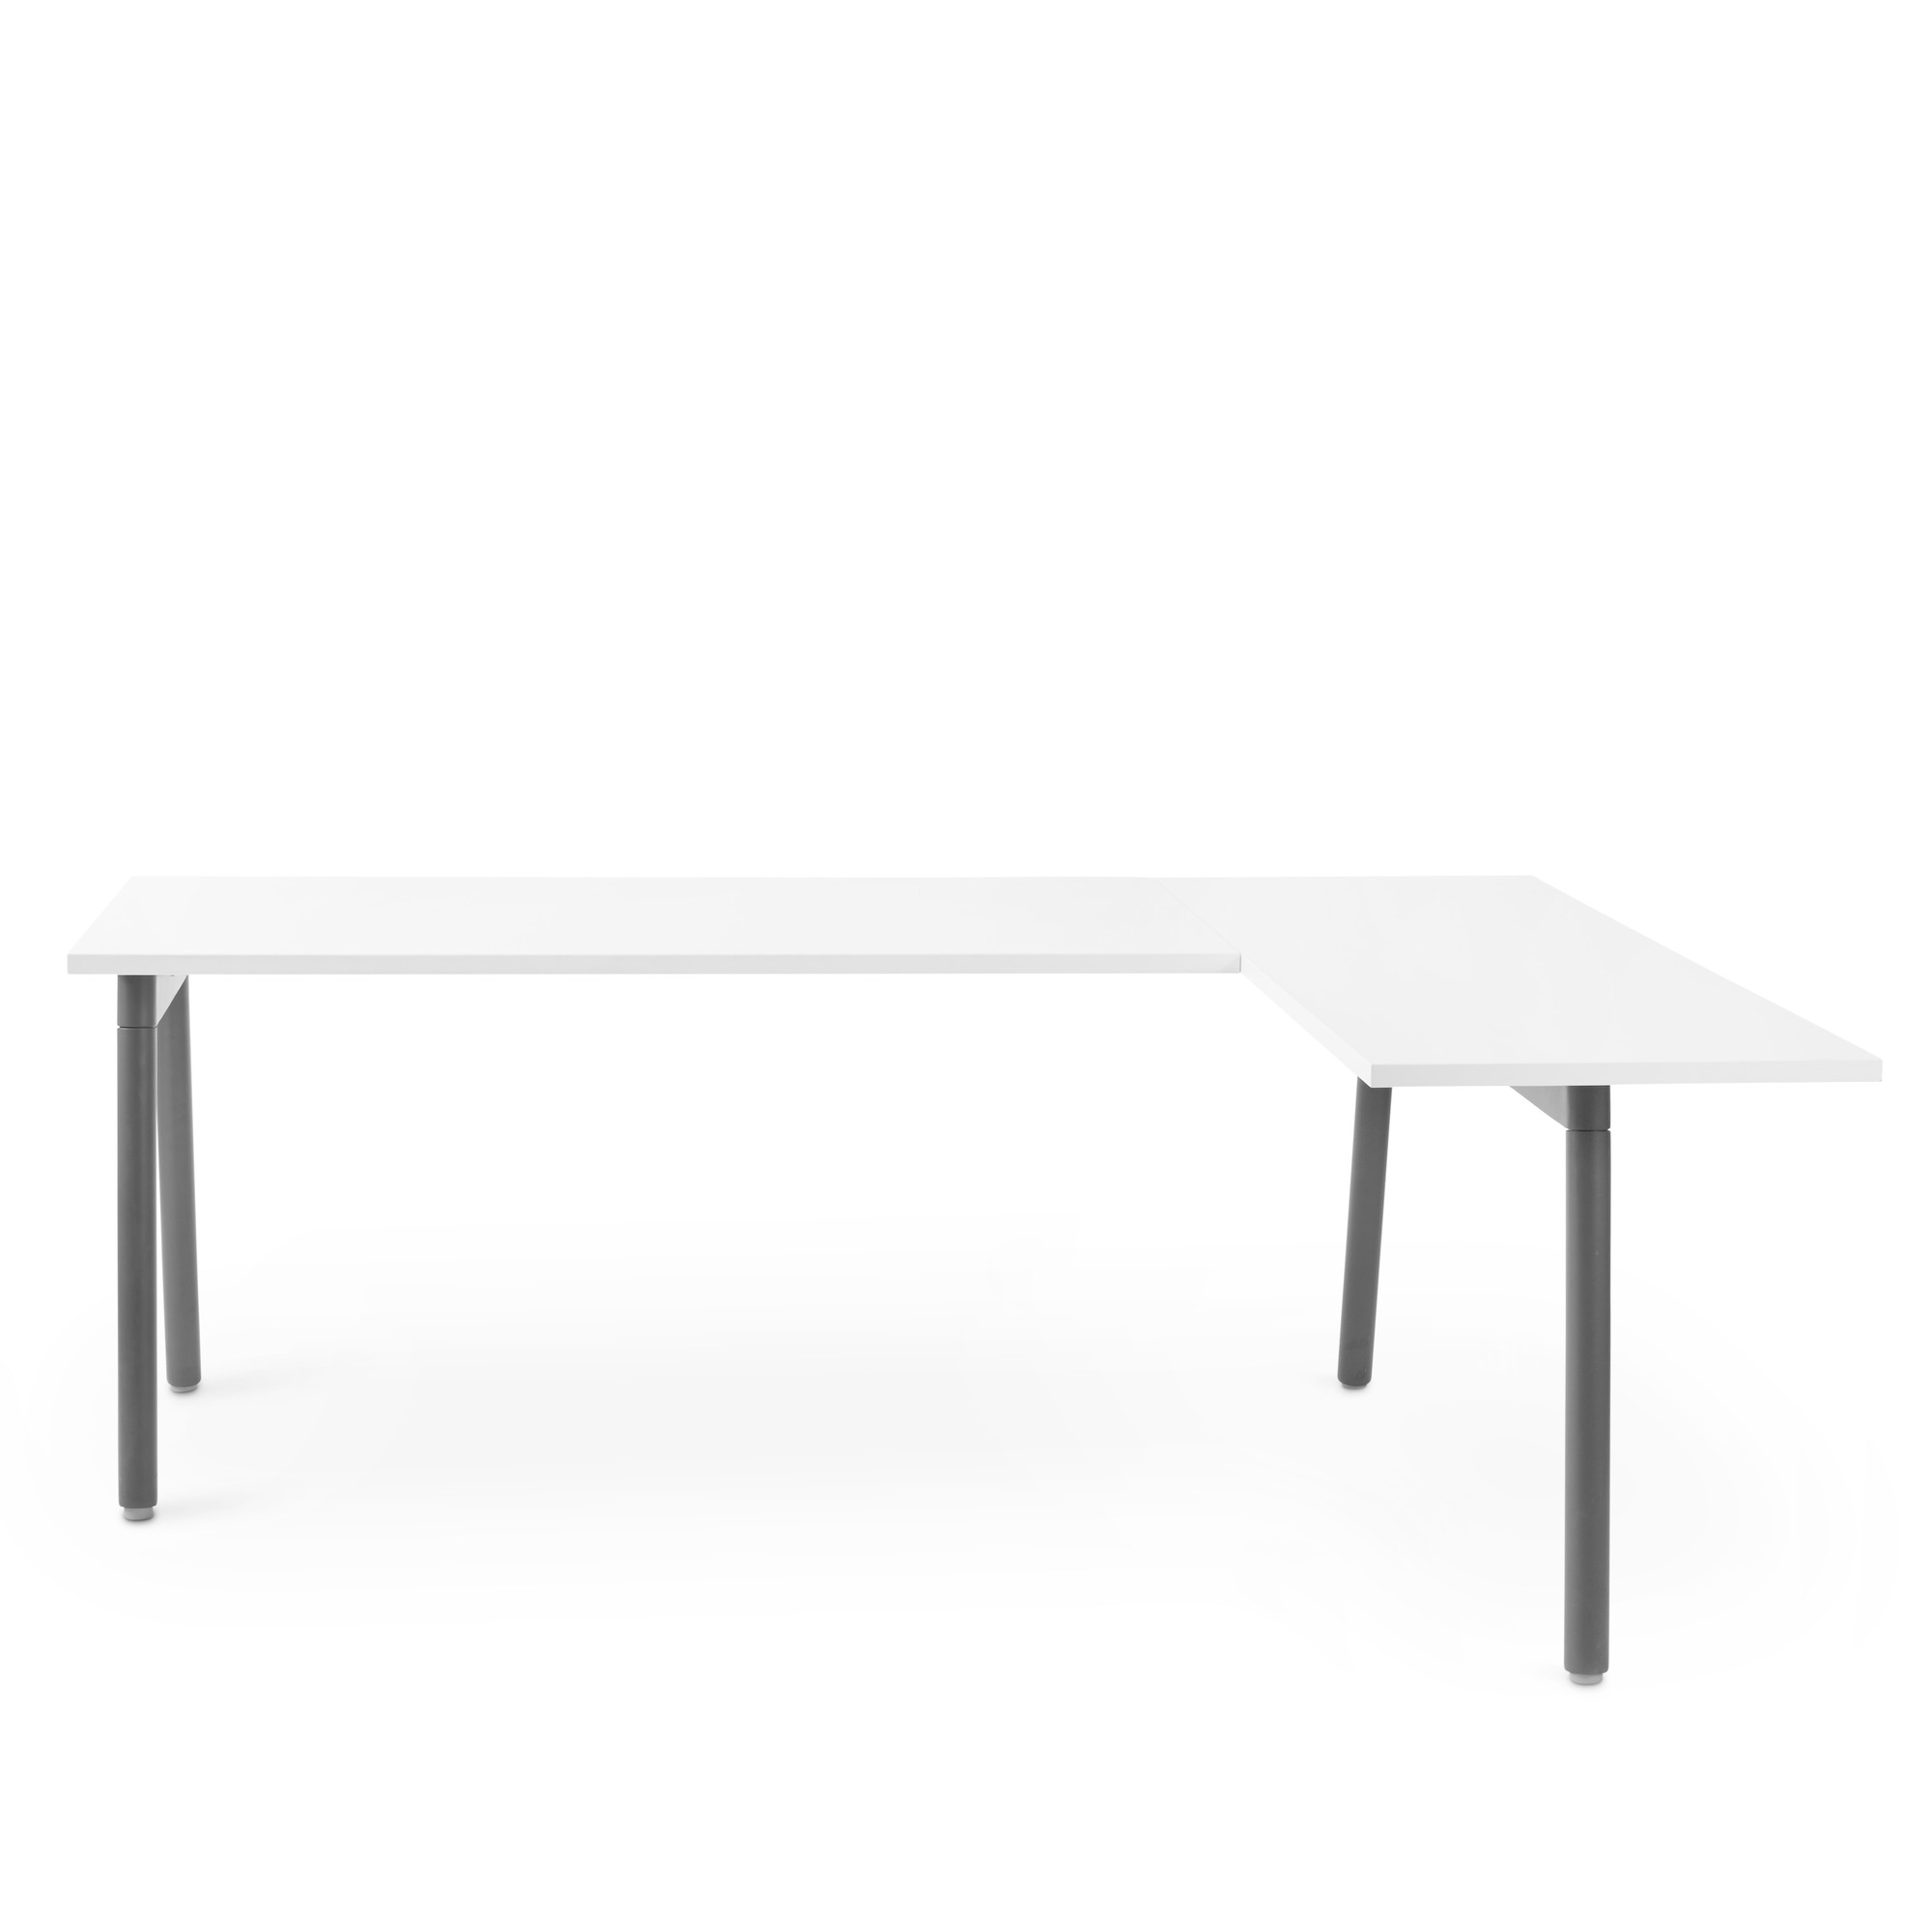 Idyllic Series A Charcoal Right L Shaped Desks Gaming L Shaped Desks Ikea Charcoal Right Series A Desk houzz-03 L Shaped Desks